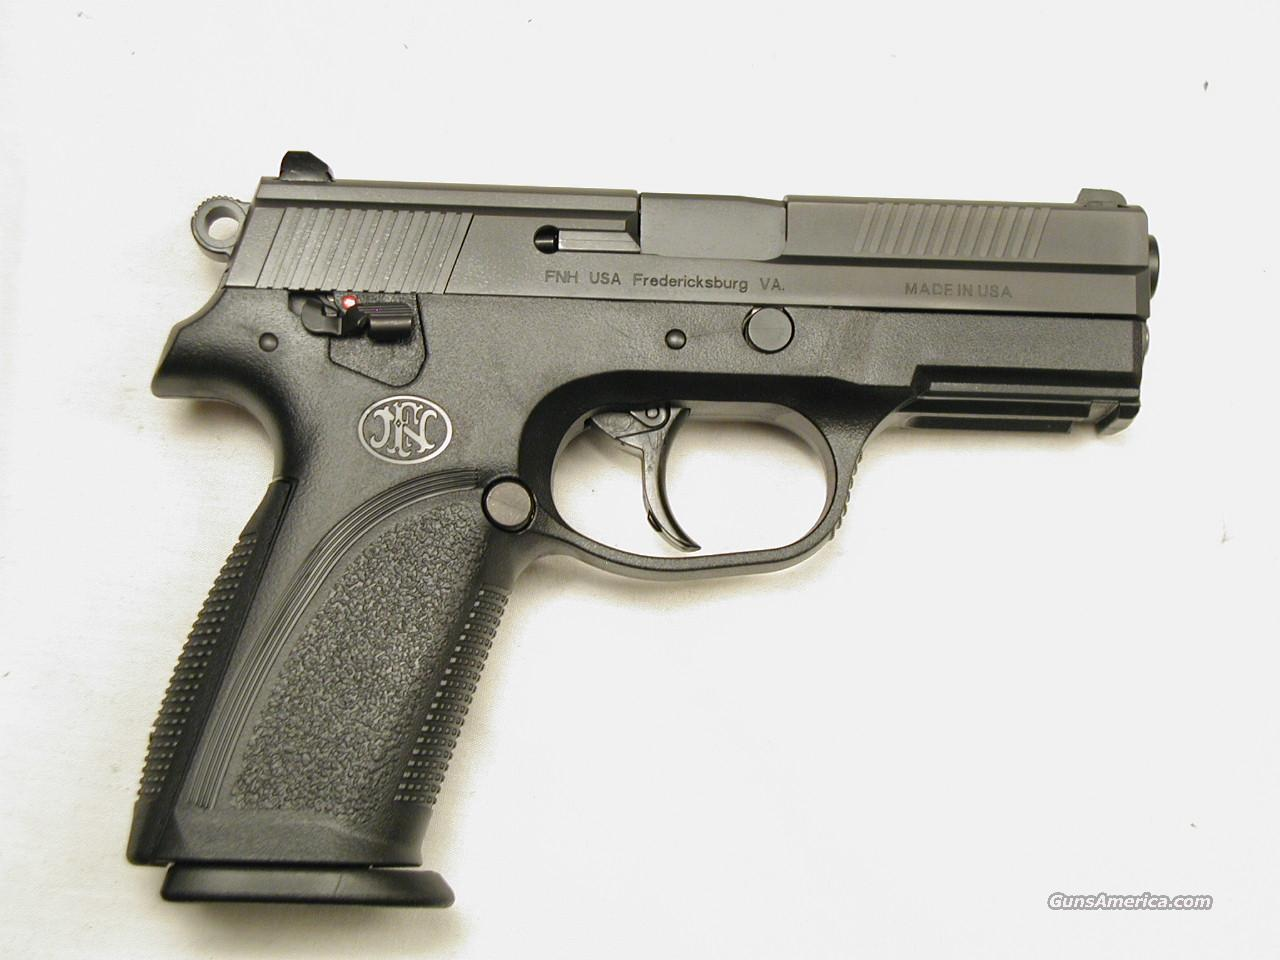 FNP 40 WITH SAFETY AND DECOCKING LEVER AND 3 MAGS  Guns > Pistols > FNH - Fabrique Nationale (FN) Pistols > FNP